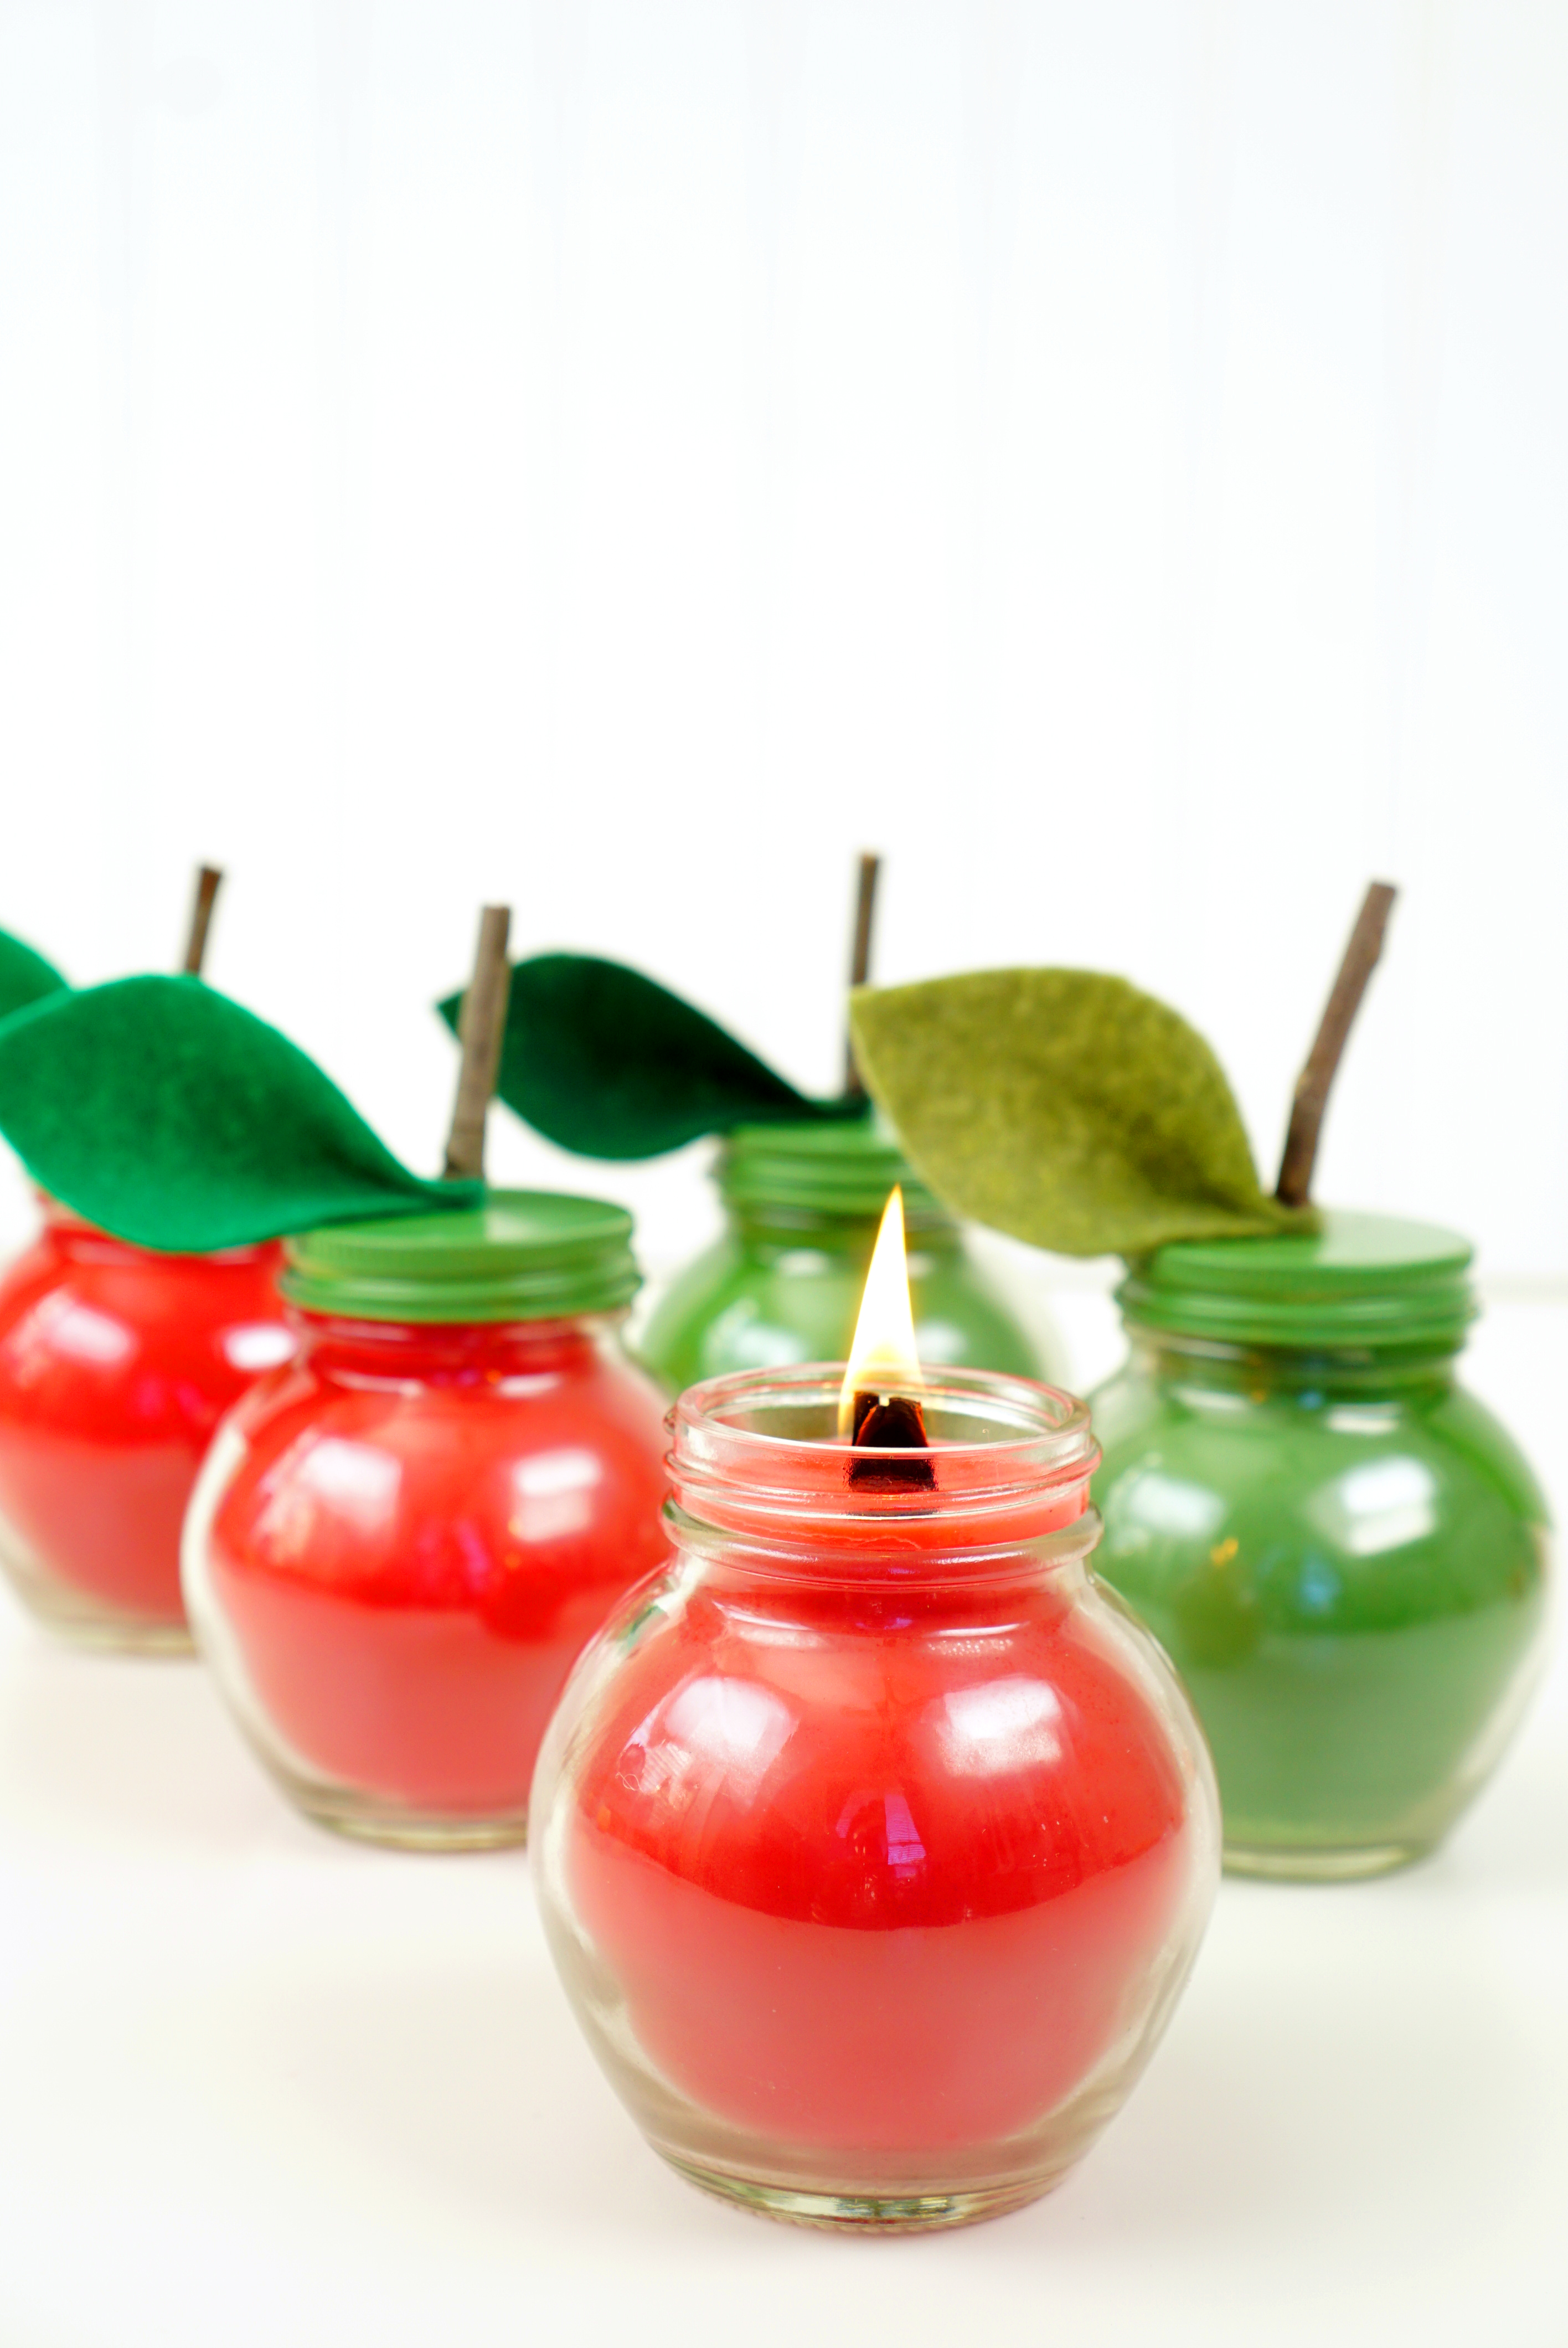 Ever wondered how to make candles? These Easy DIY Apple Spice Candles are super simple to make, and they smell incredible! Makes a great DIY gift idea for friends, family, teachers, neighbors, and more!